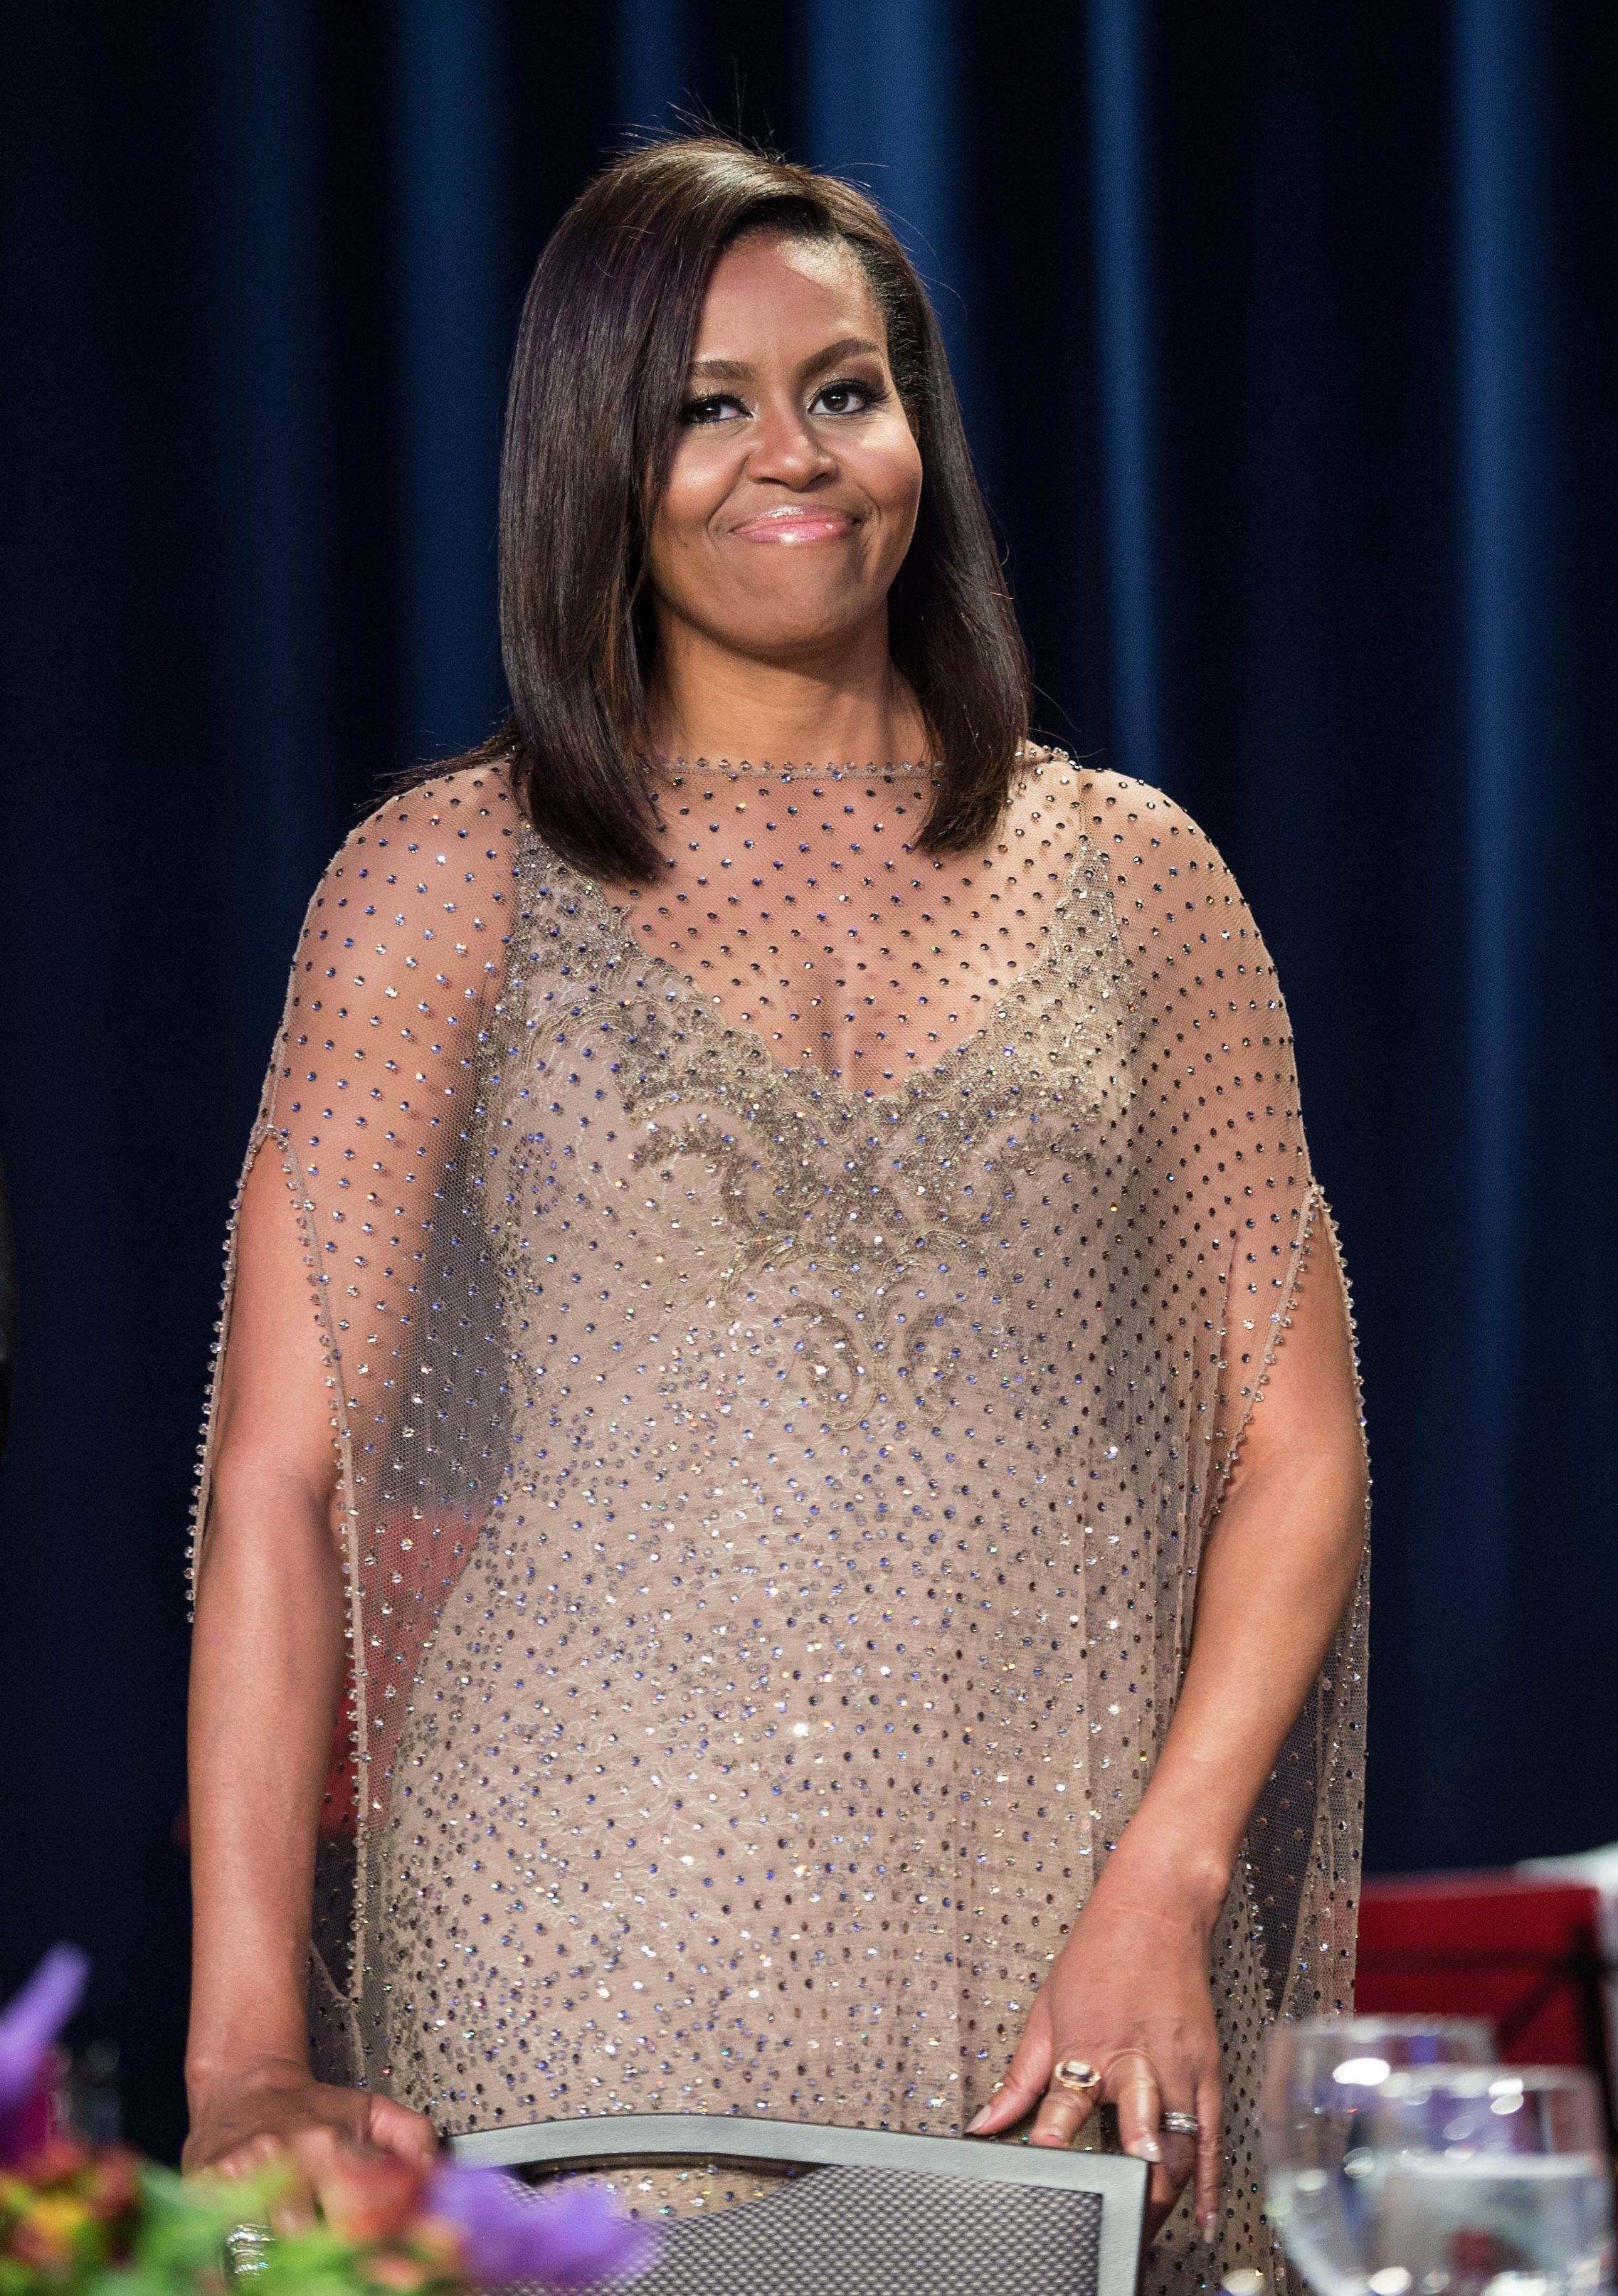 Michelle Obama Says She Has Low Grade Depression,Barefoot Contessa Pioneer Woman Meatloaf Recipe